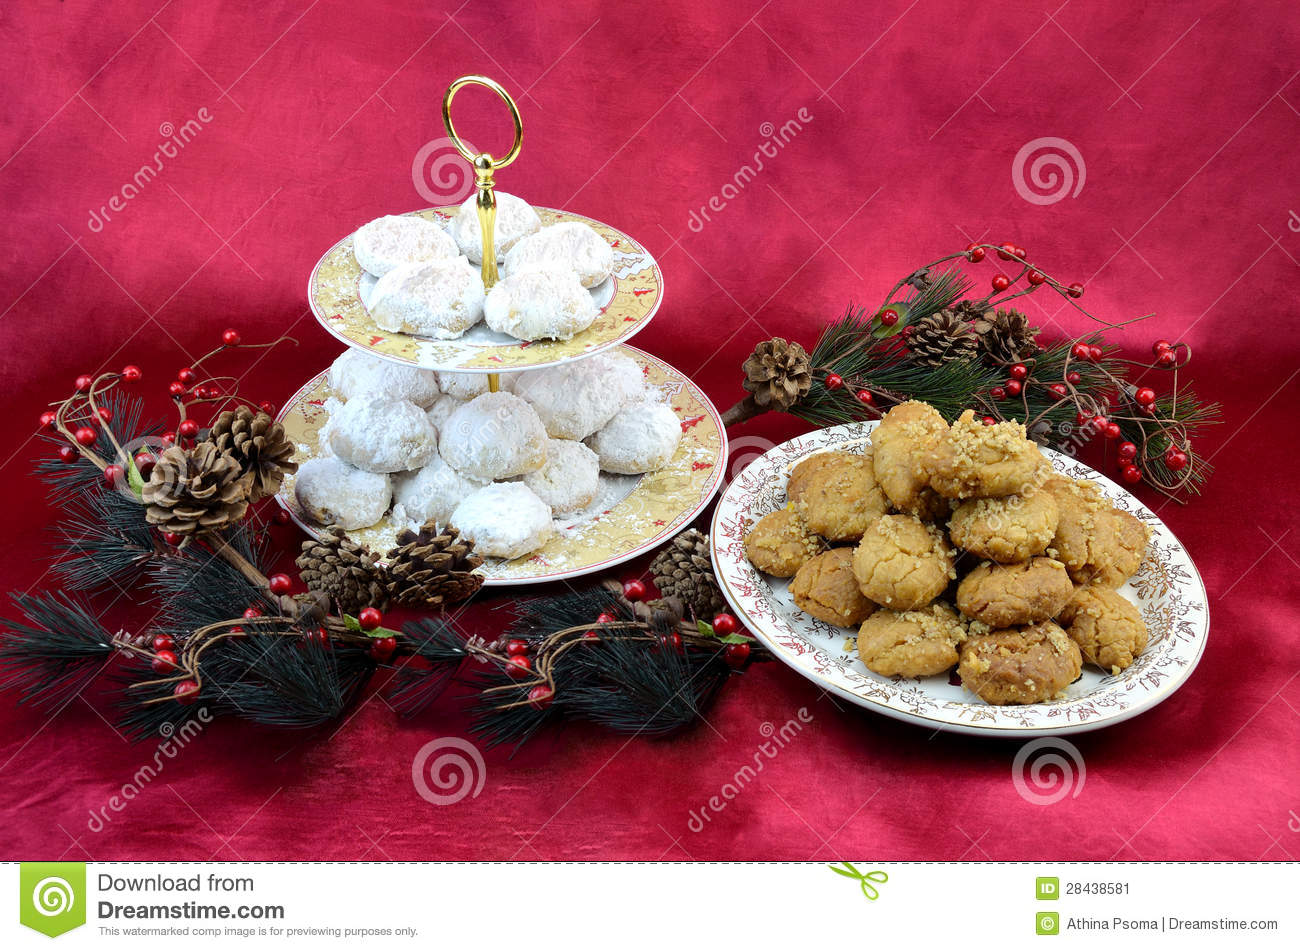 Greek traditional christmas desserts kourabiedes and melomakarona